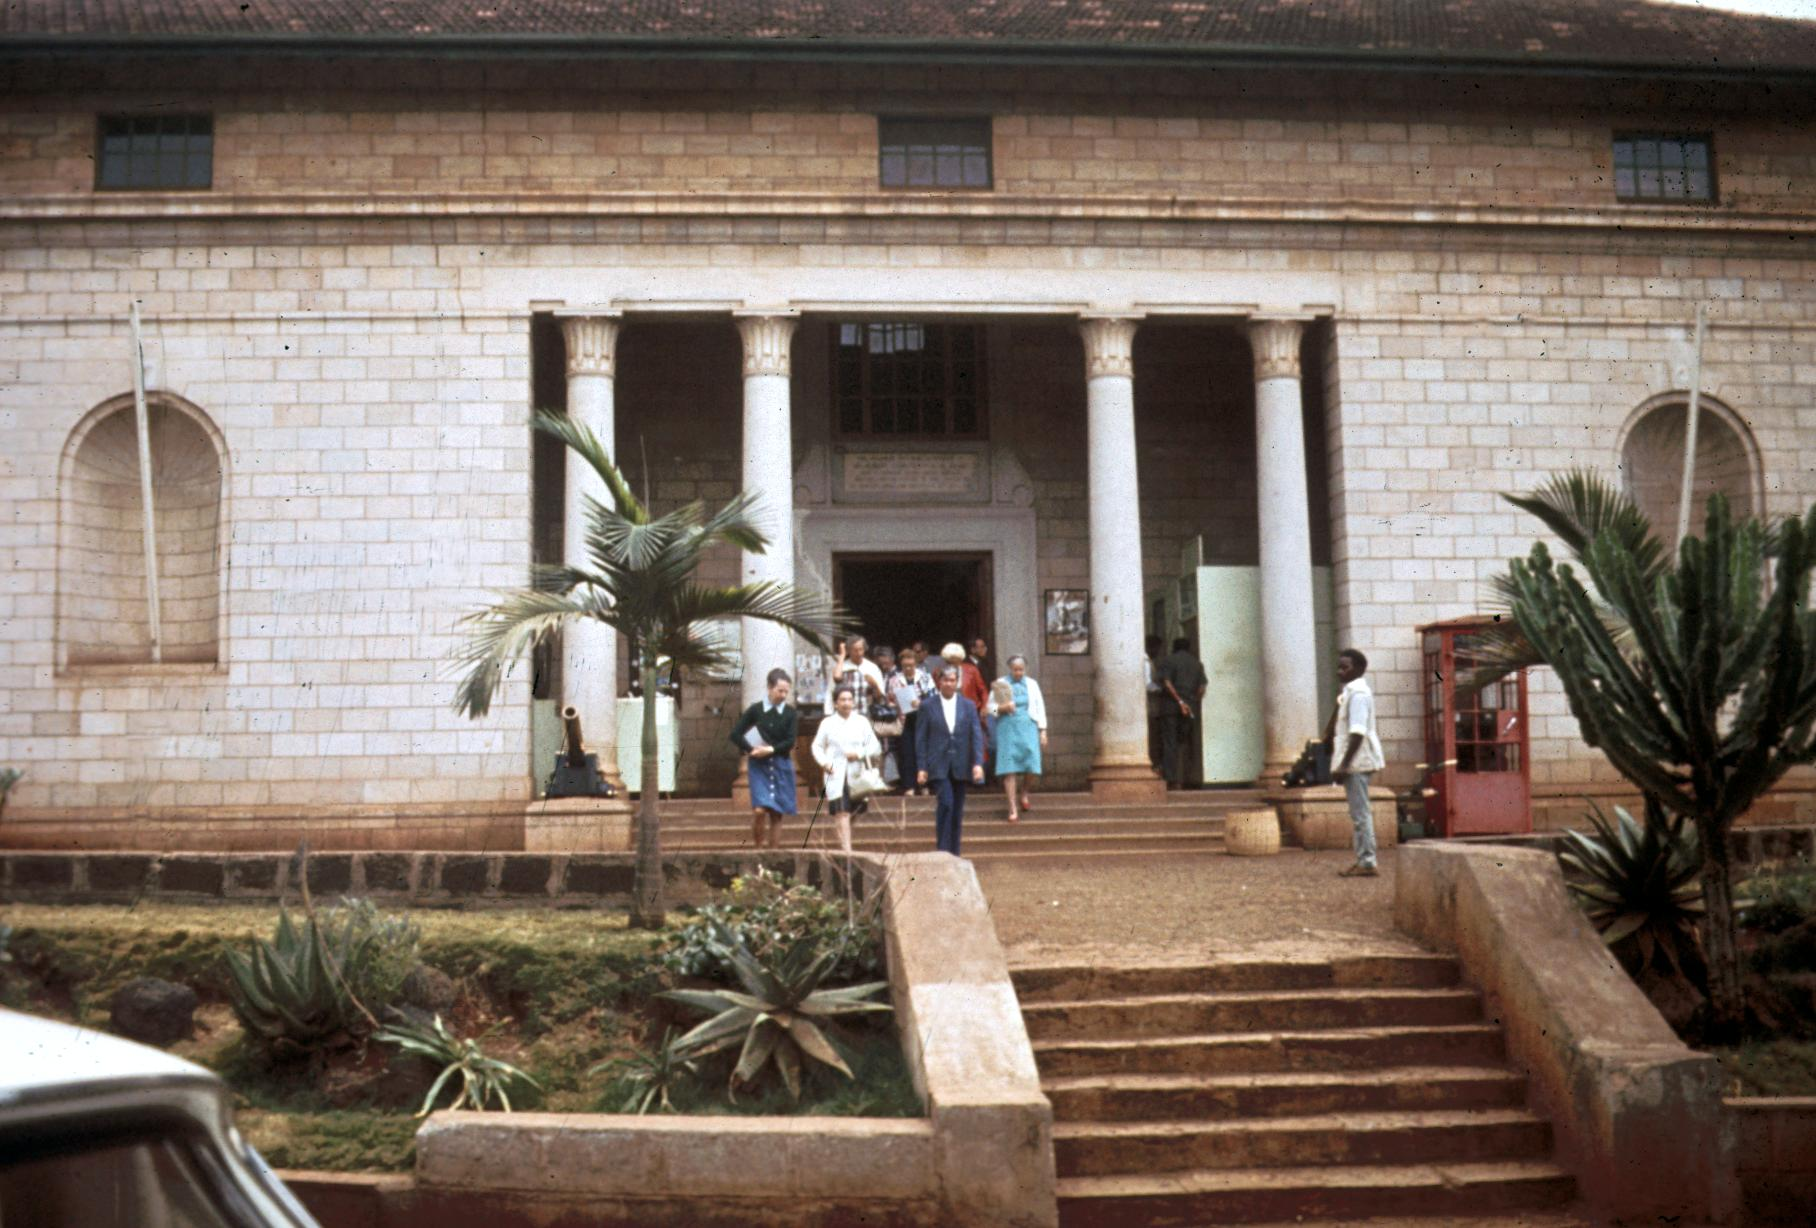 Exterior of Leakey Museum in Nairobi